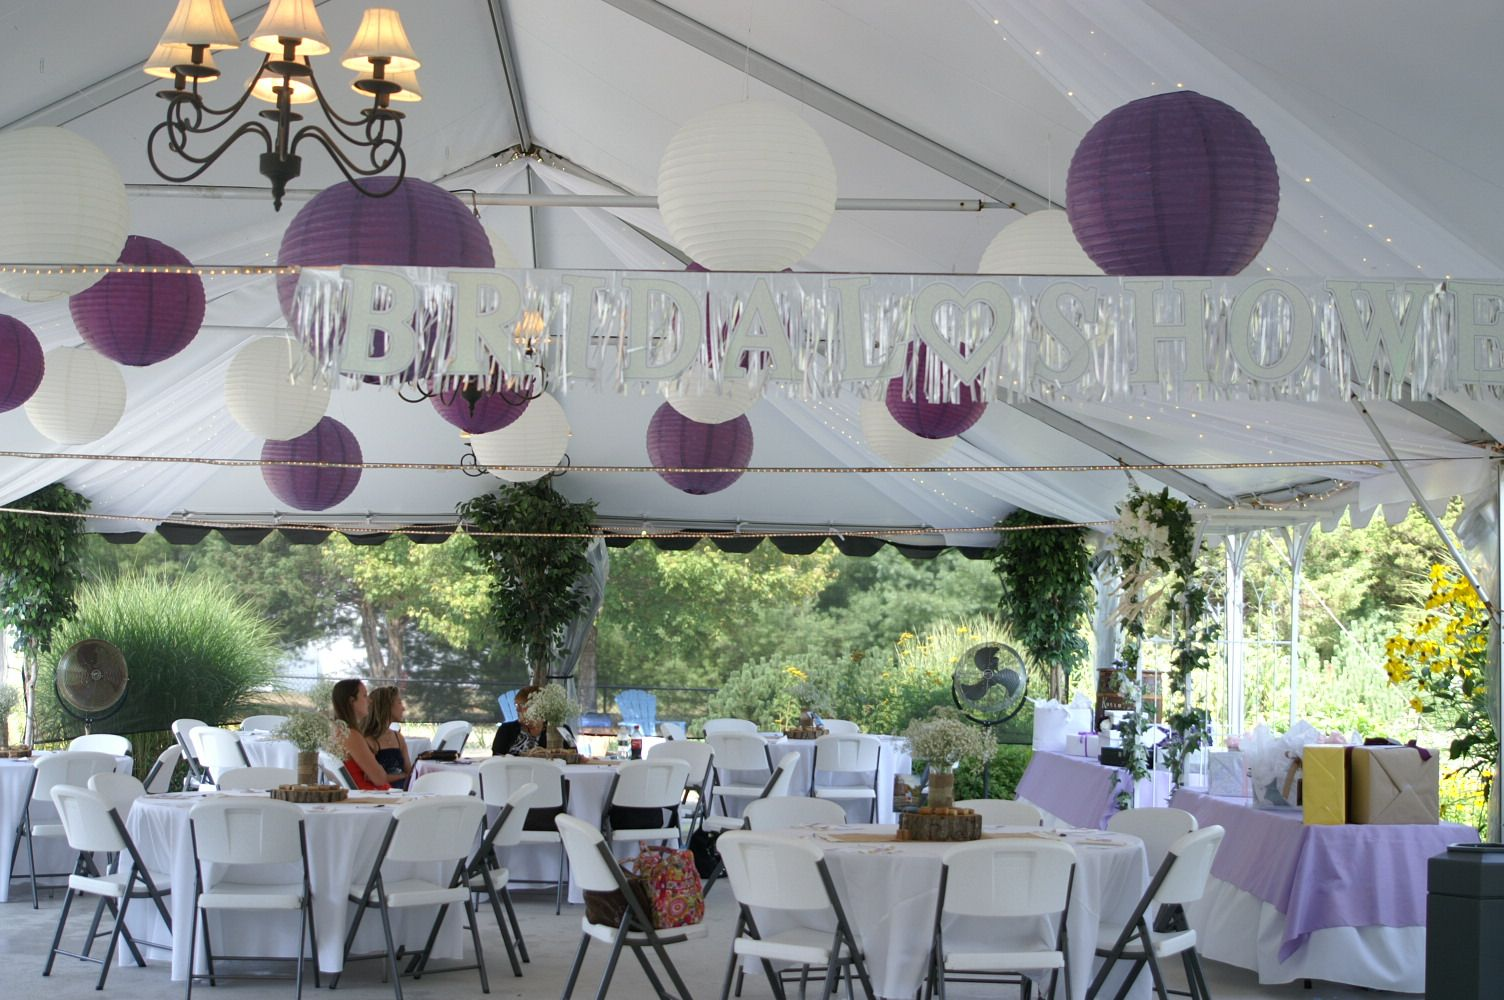 A purple and white themed bridal shower!